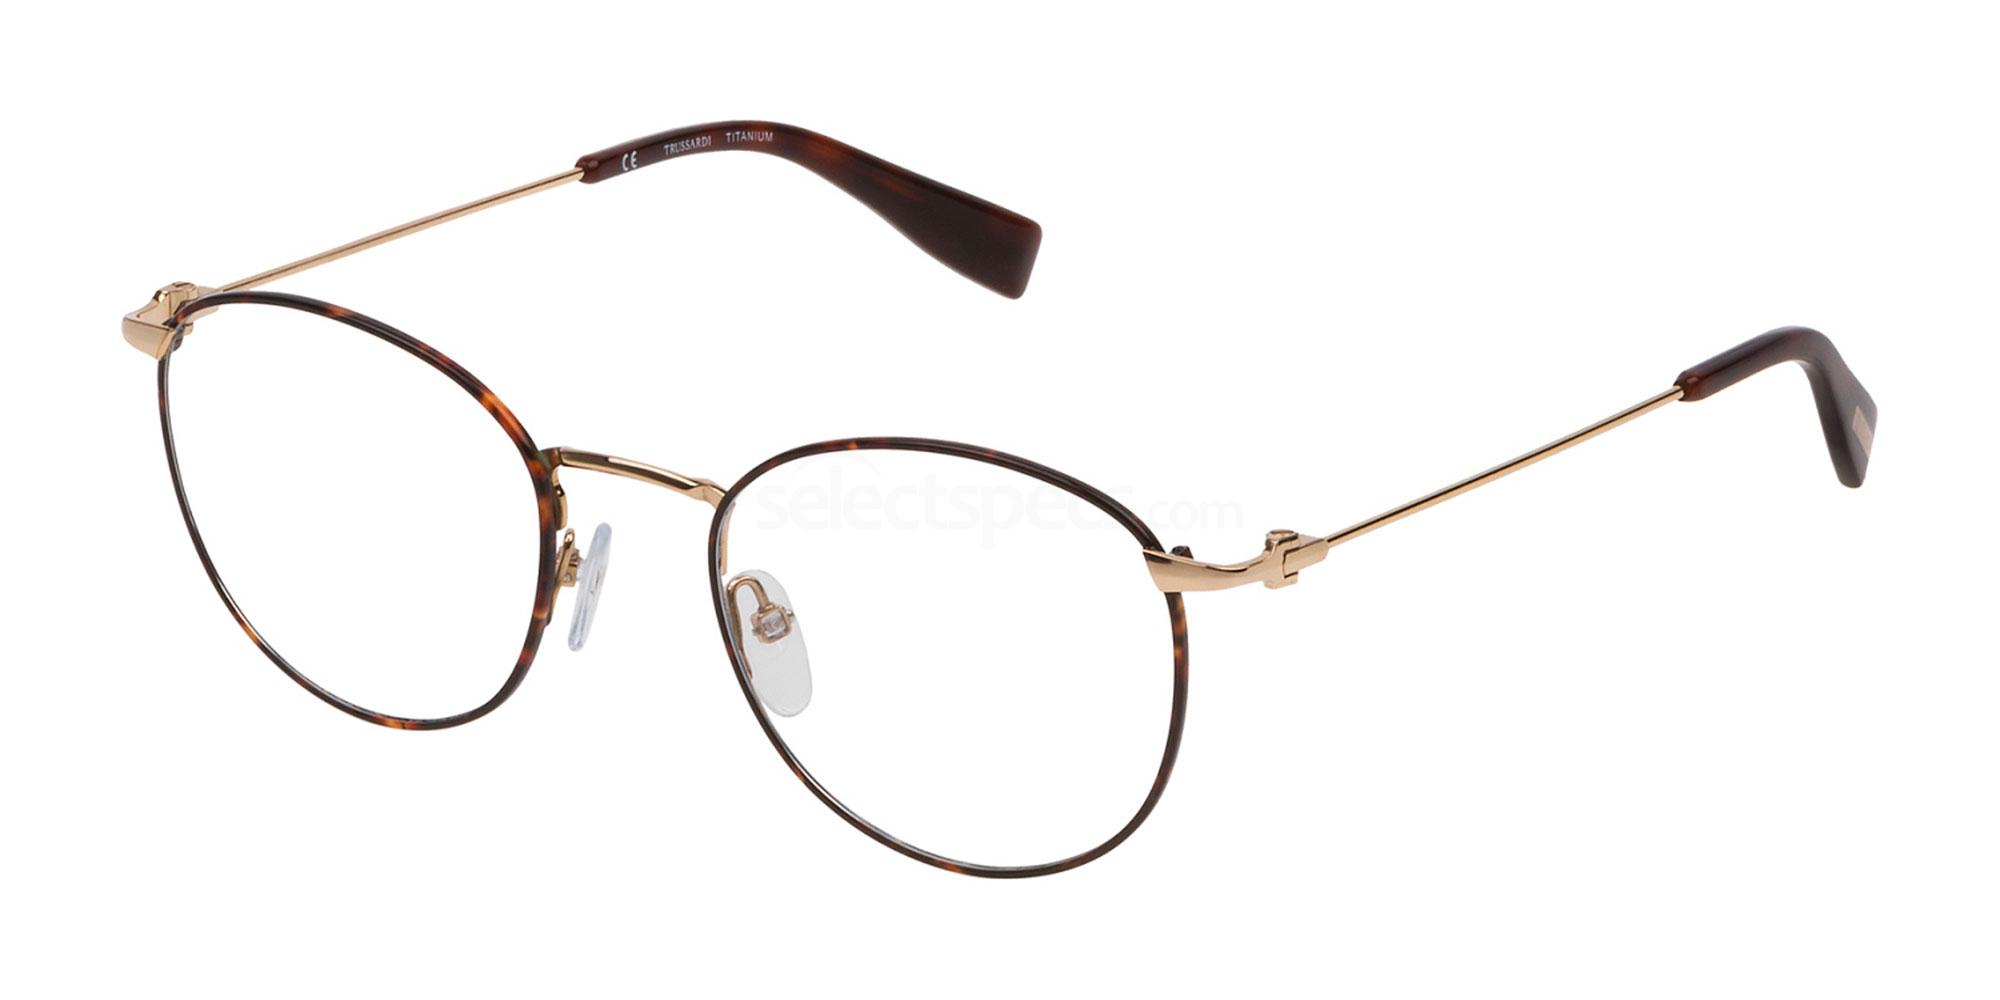 0320 VTR247 Glasses, Trussardi